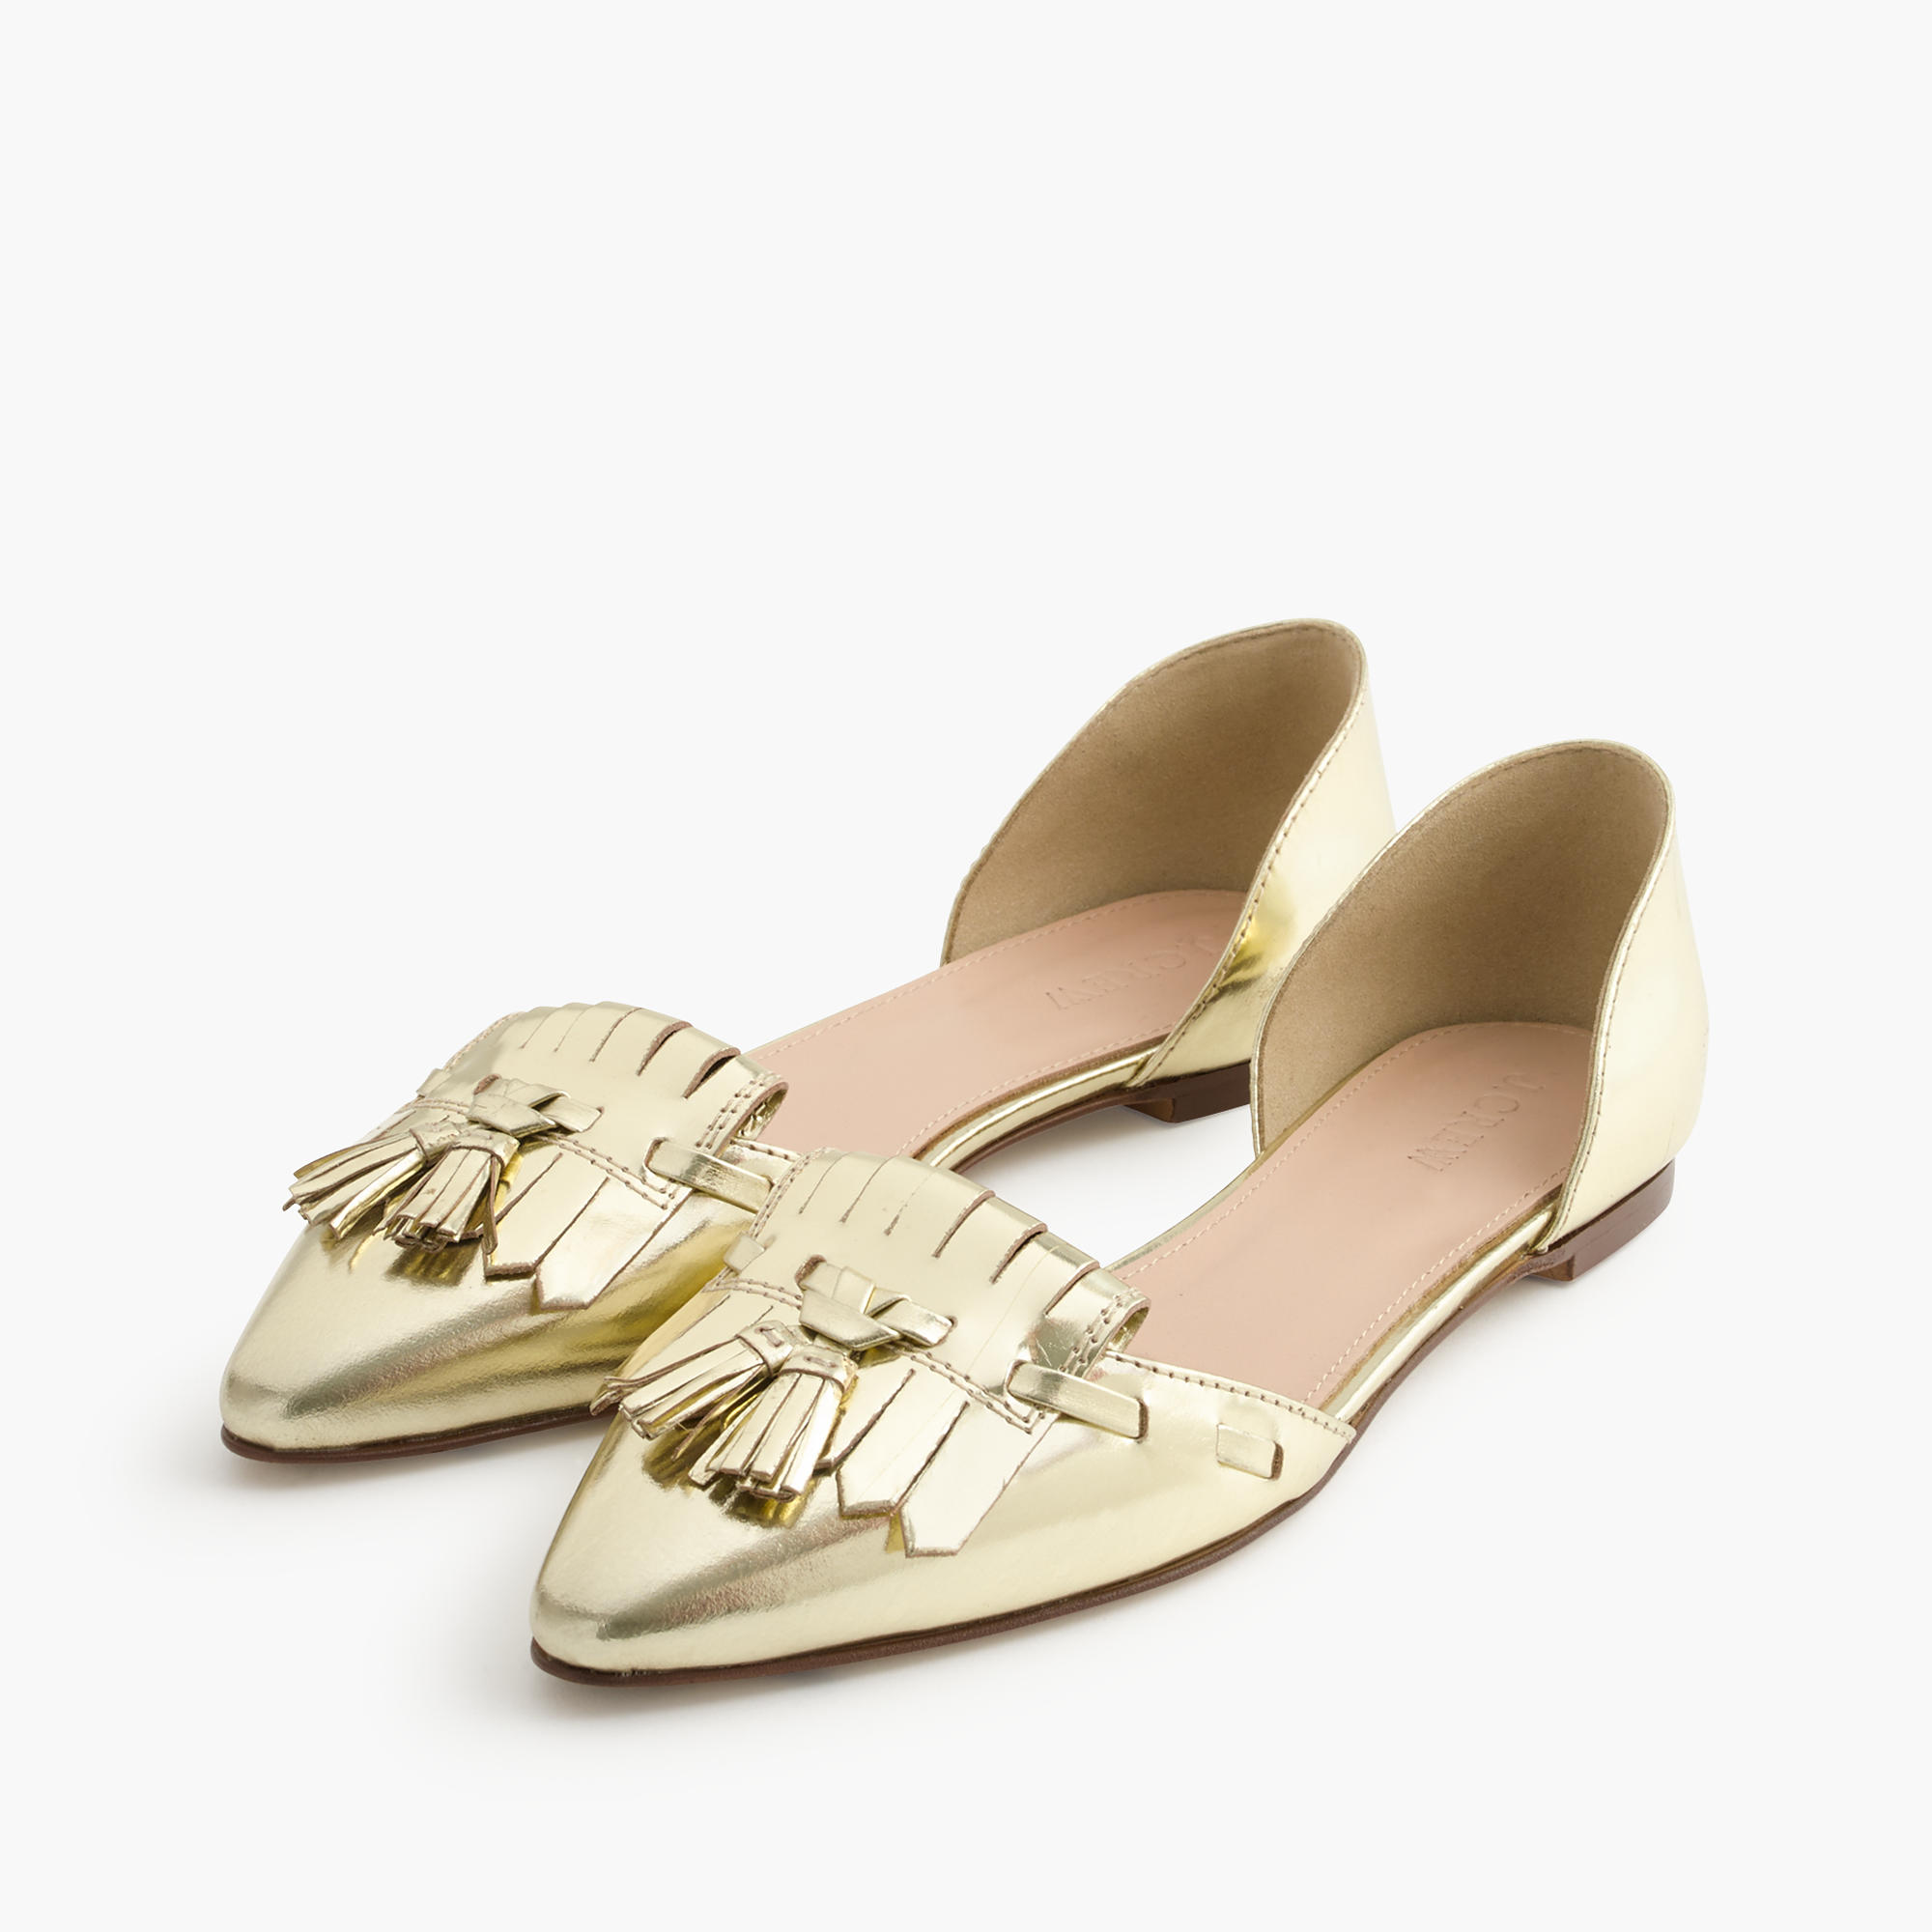 Mirror metallic d'Orsay loafer flats